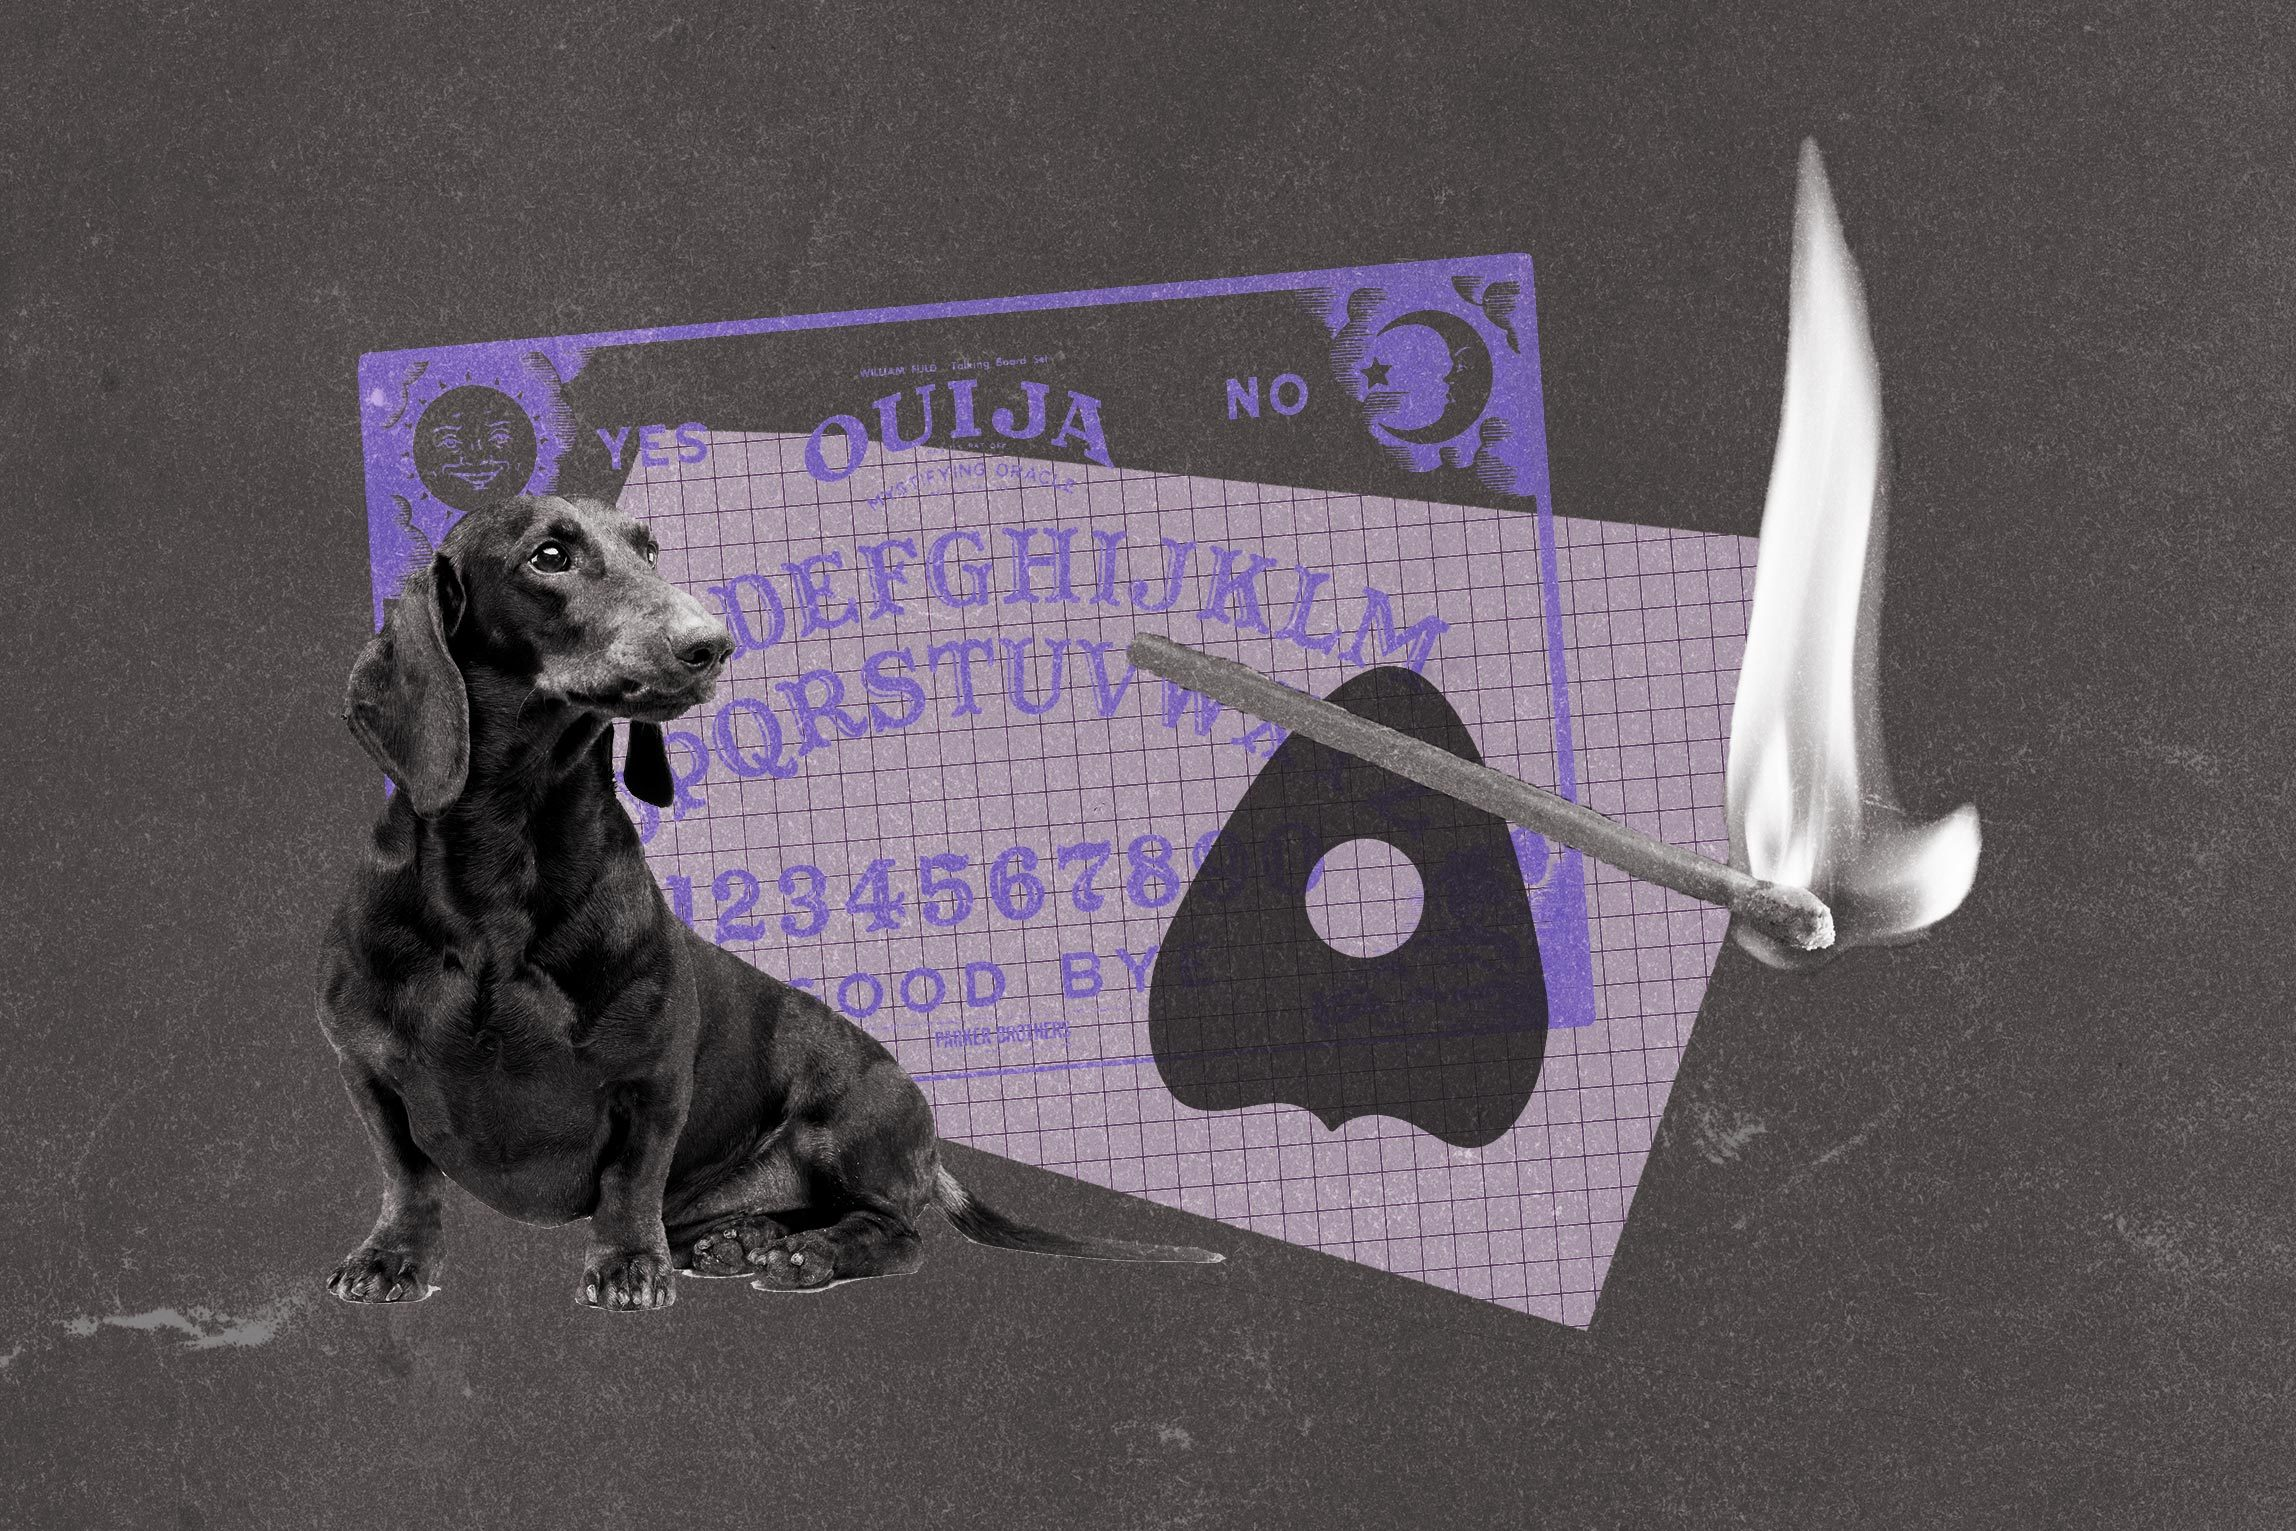 Collage of dog, ouija board, and fire